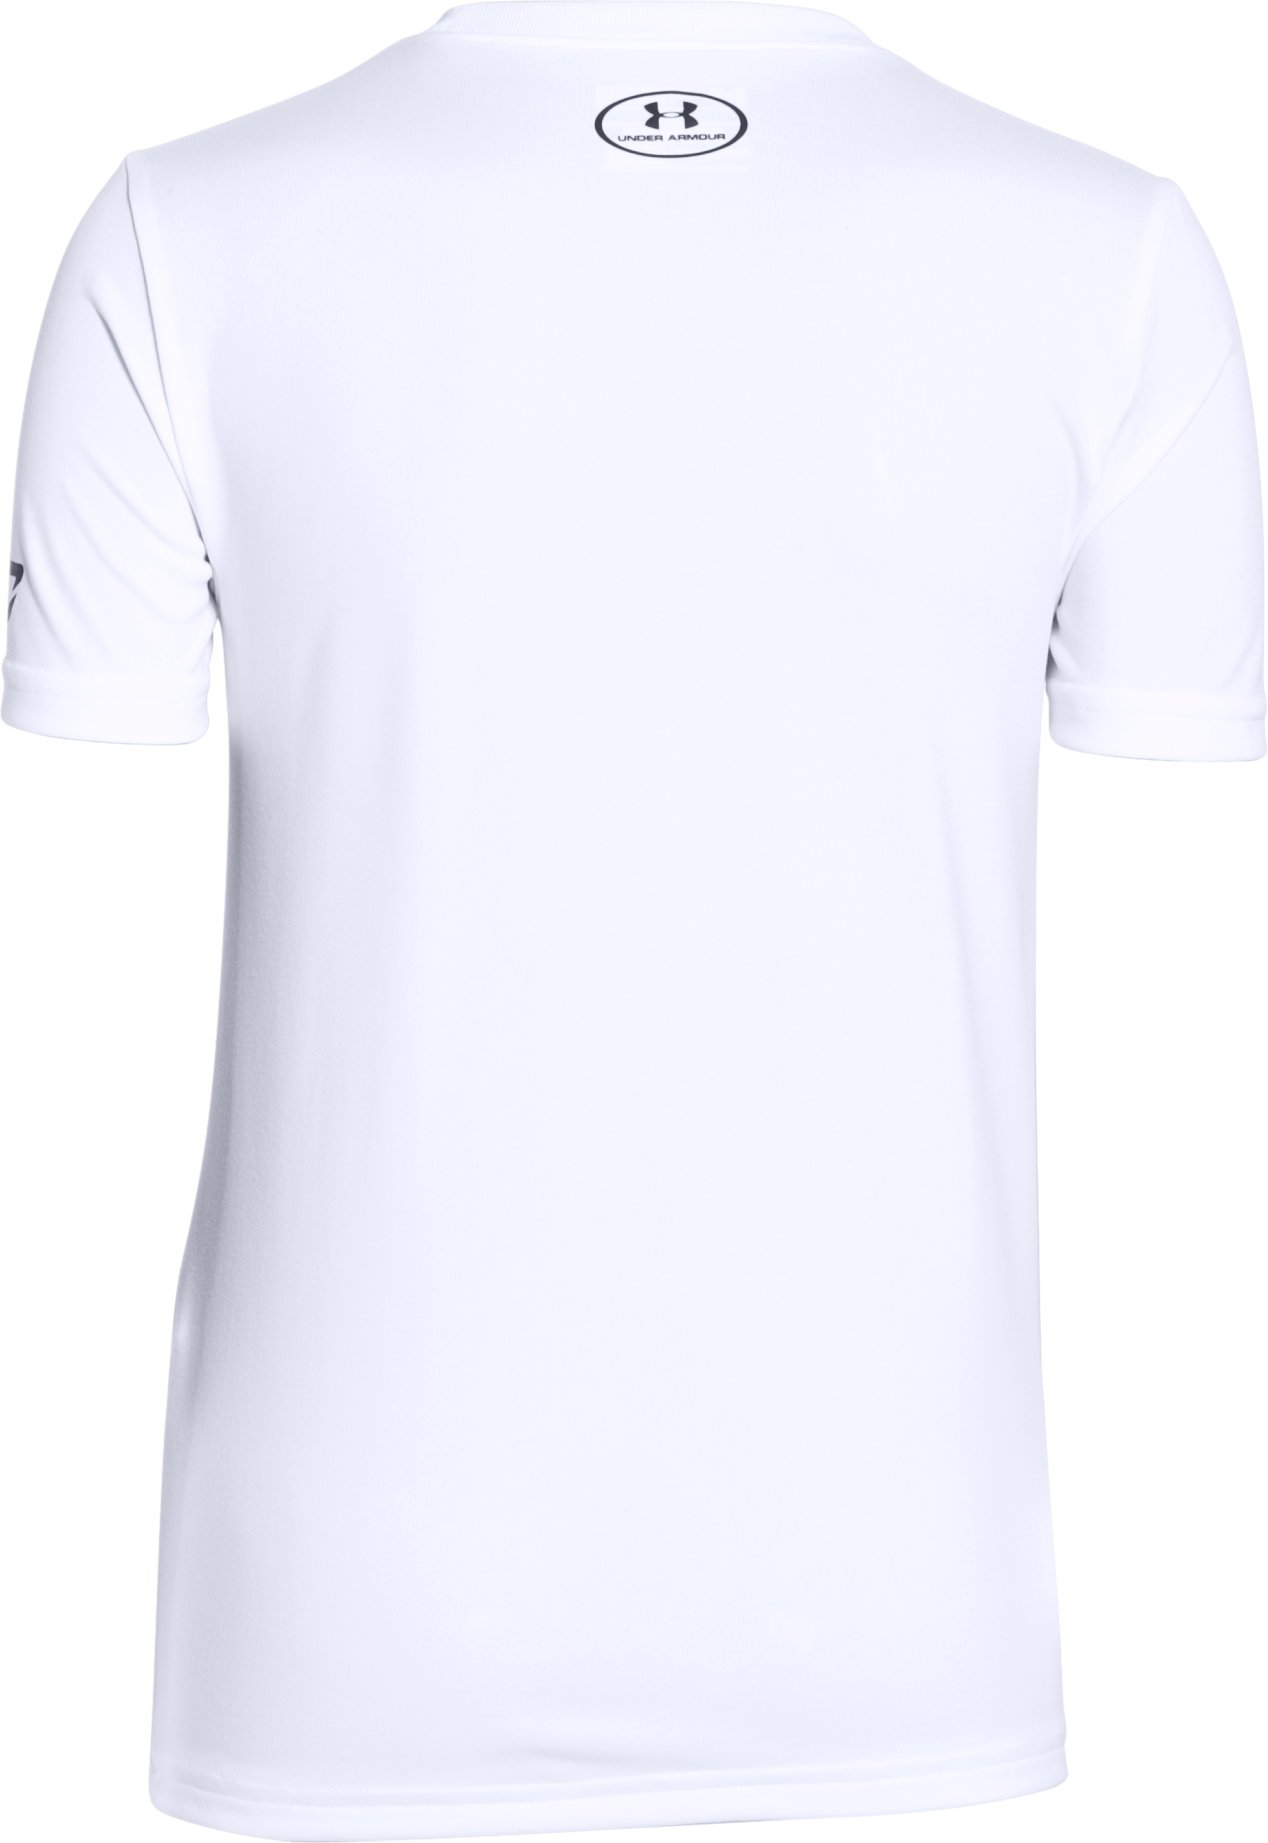 Boys' SC30 Splash Down T-Shirt, White, undefined